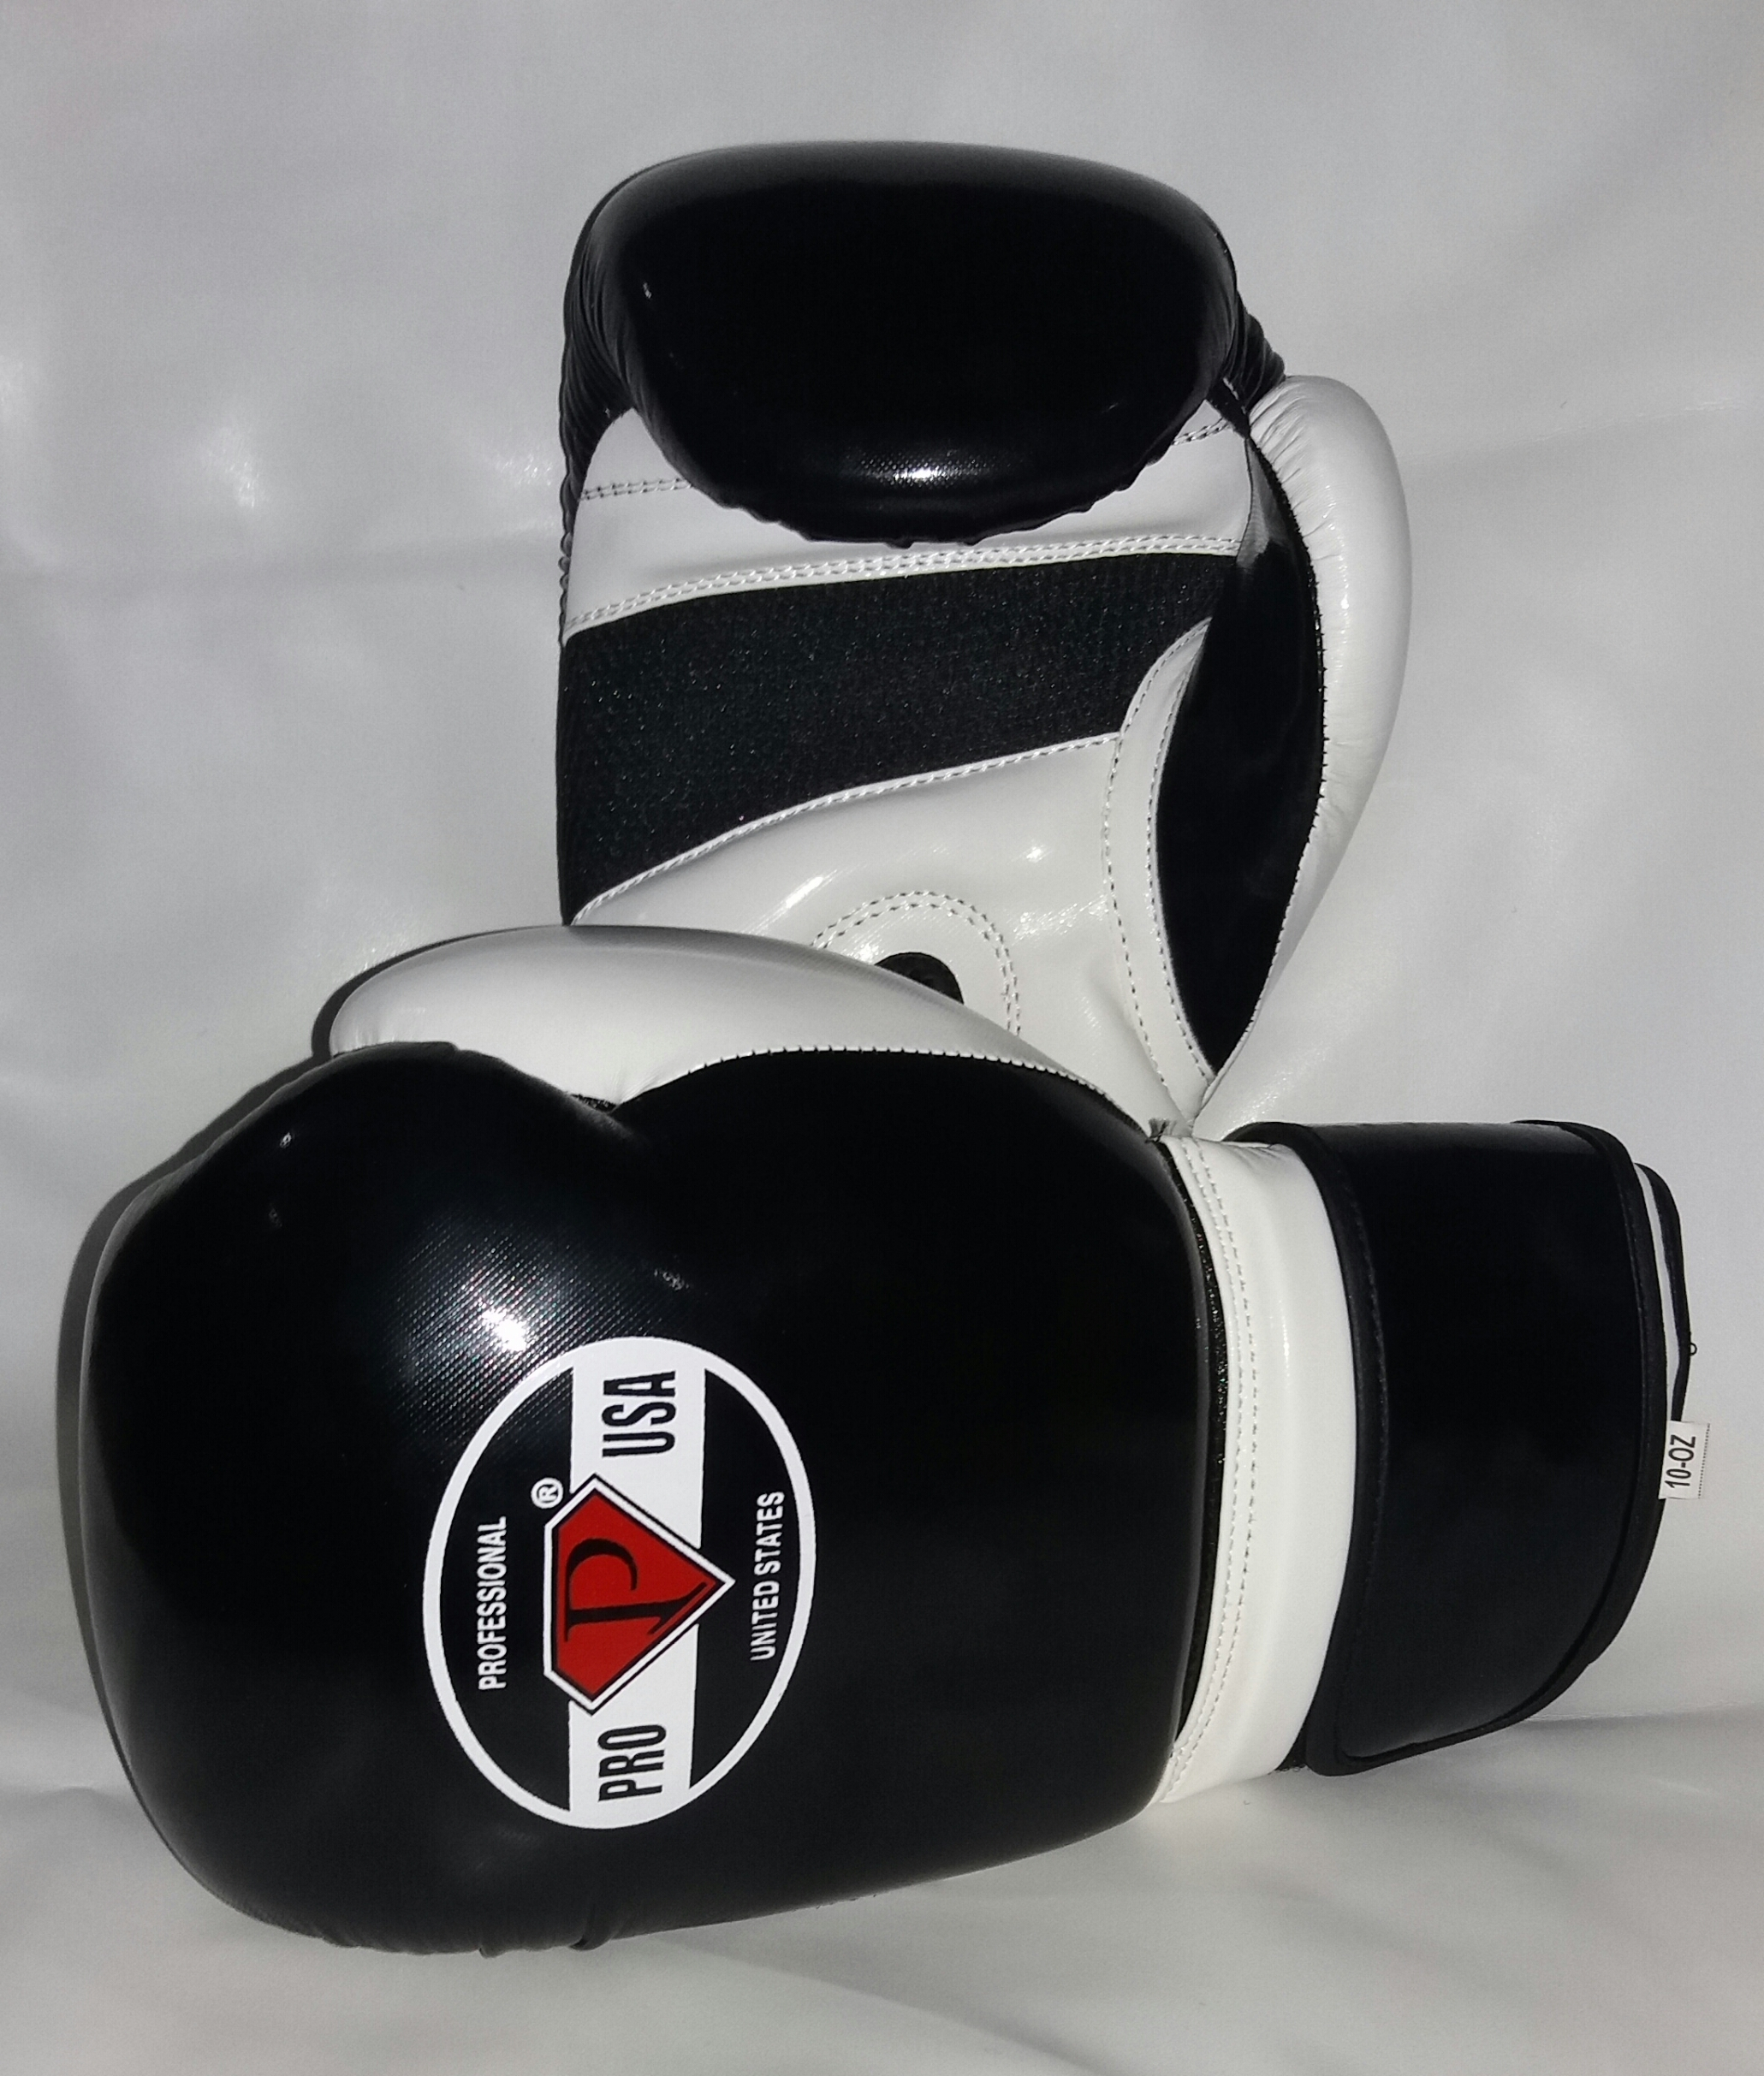 PRO USA Deluxe Training Gloves